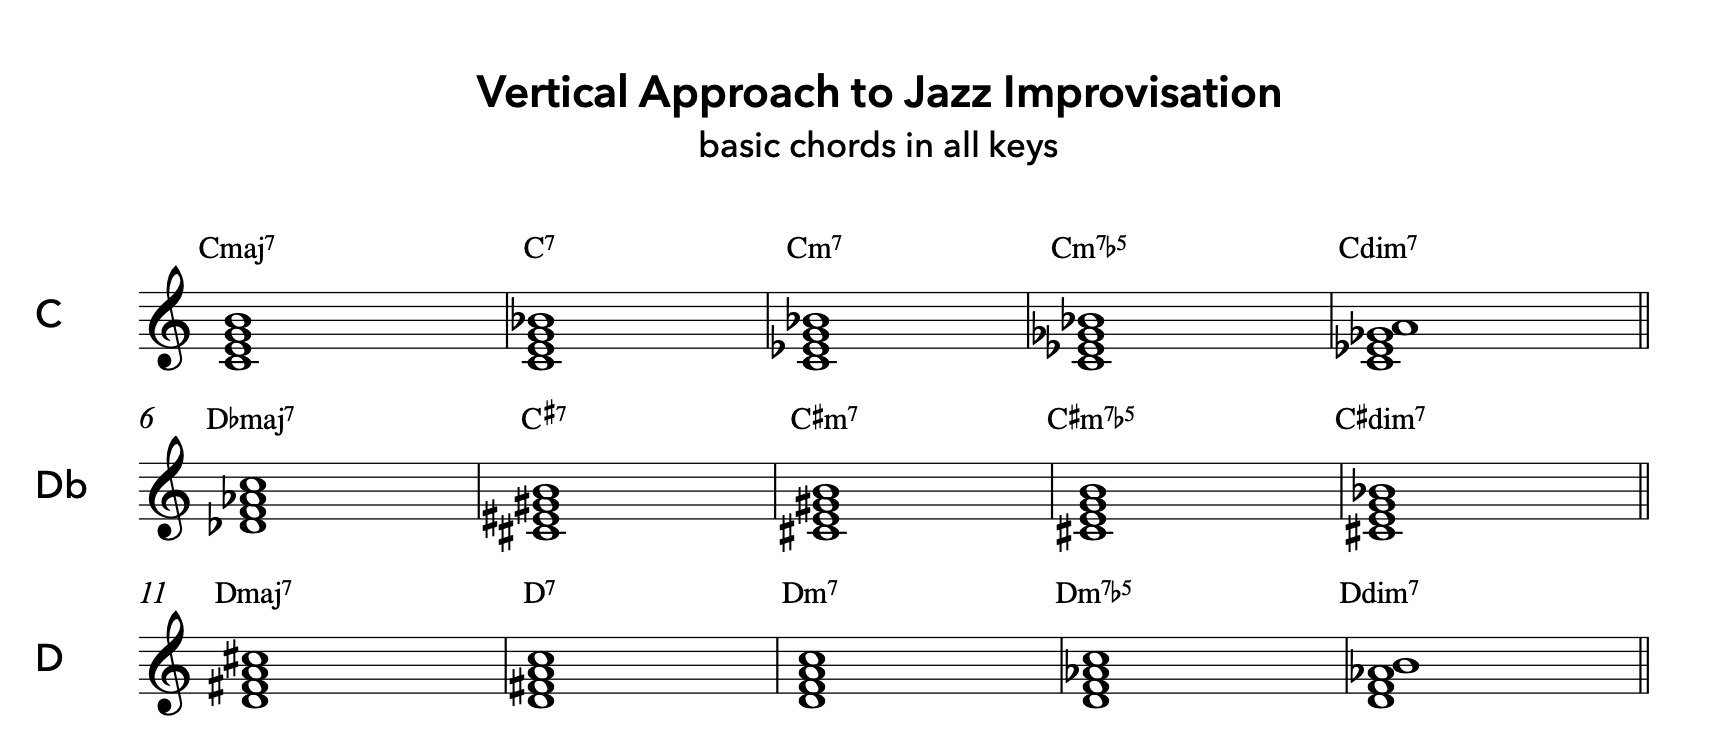 Vertical Approach to Jazz Improvisation - Basic Chords in All Keys